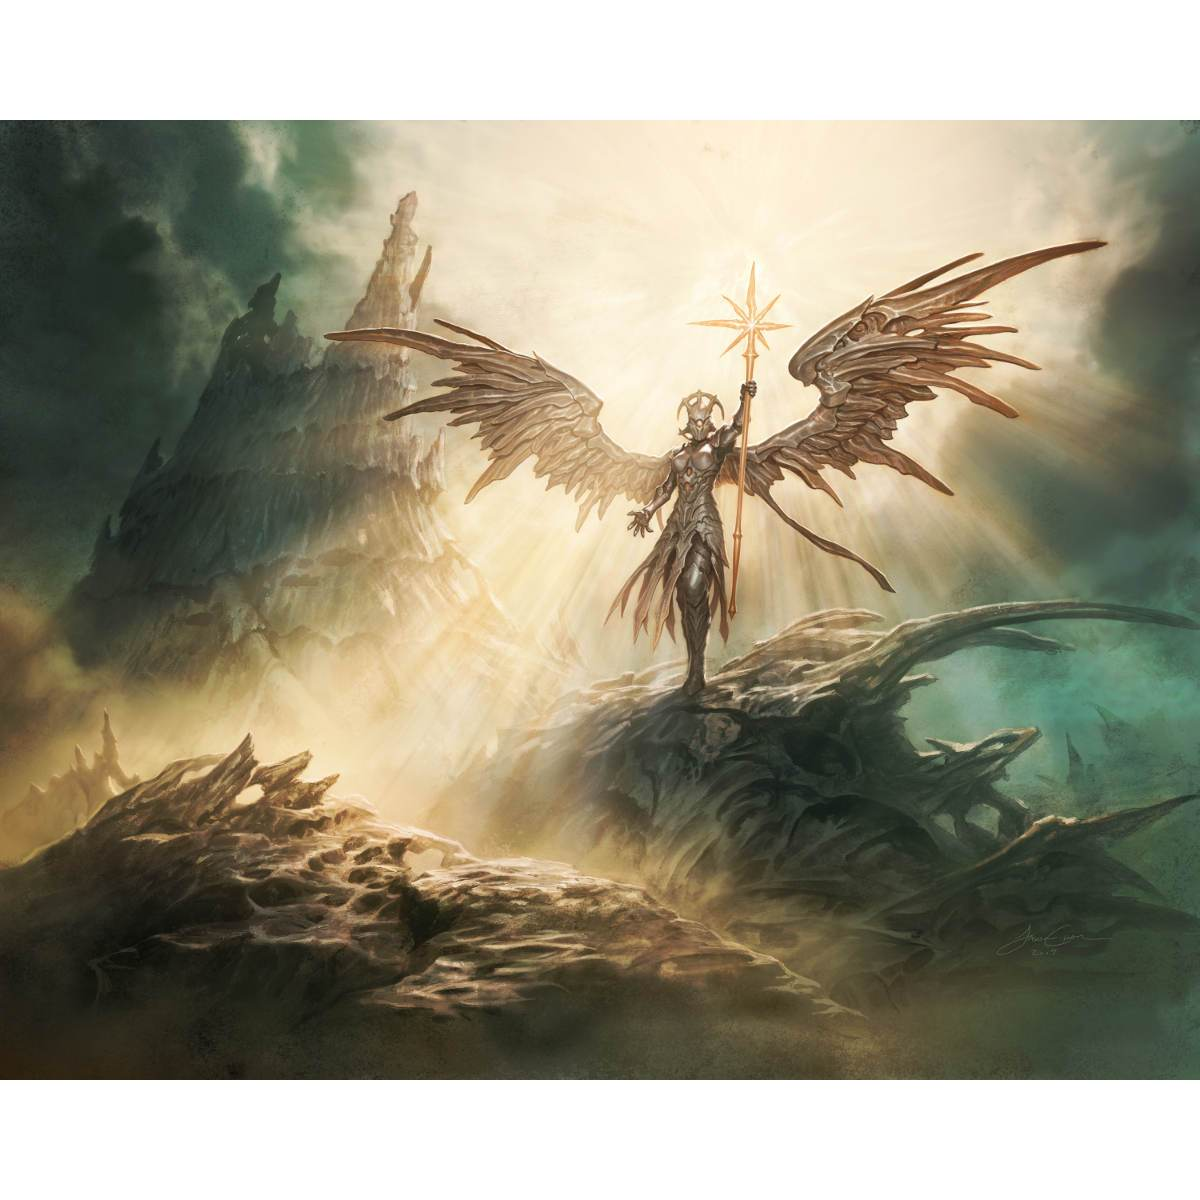 Sunblast Angel Print - Print - Original Magic Art - Accessories for Magic the Gathering and other card games